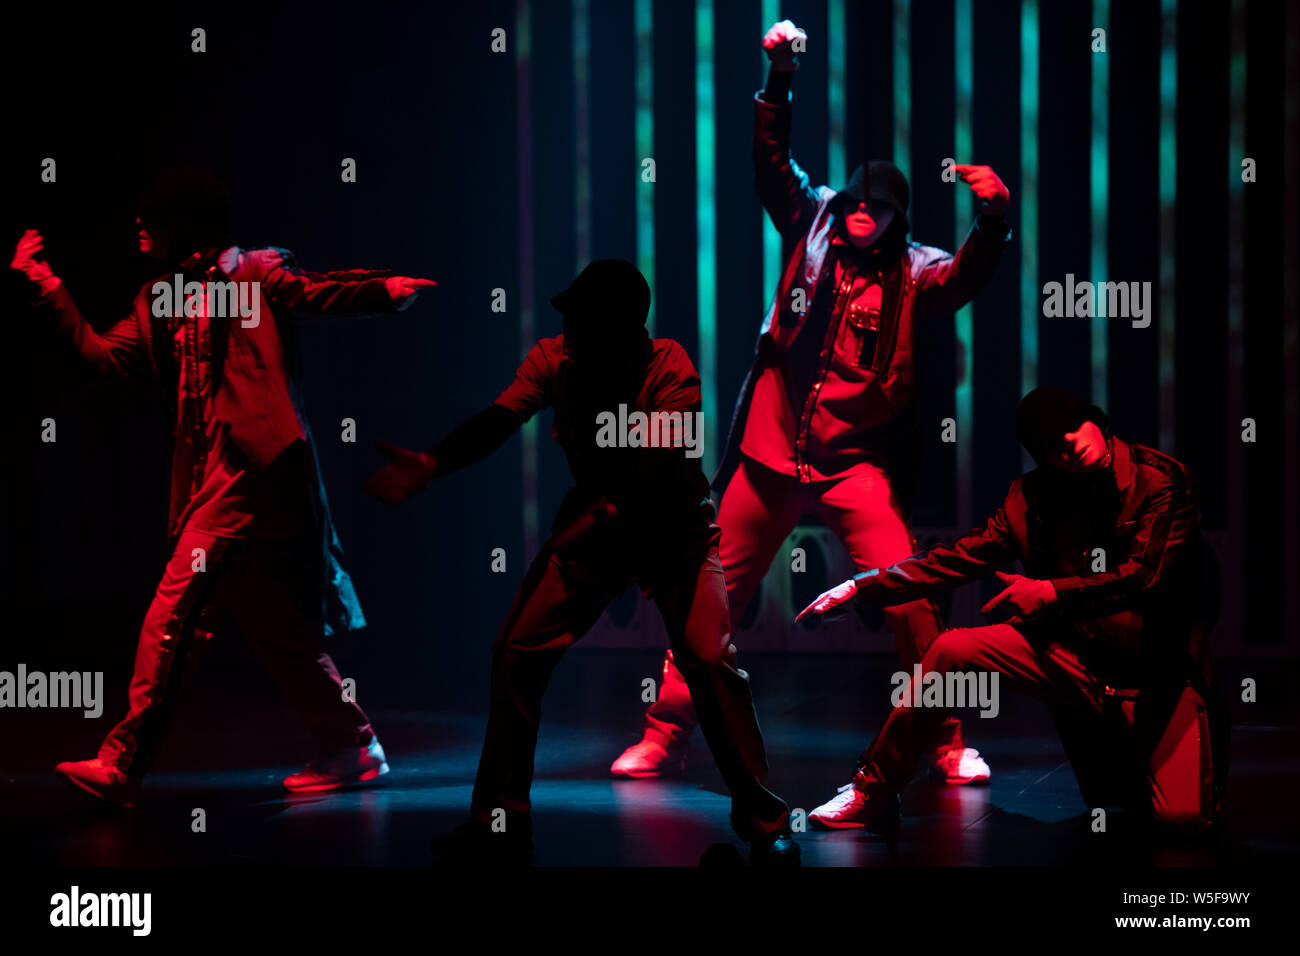 Jabbawockeez Stock Photos & Jabbawockeez Stock Images - Alamy